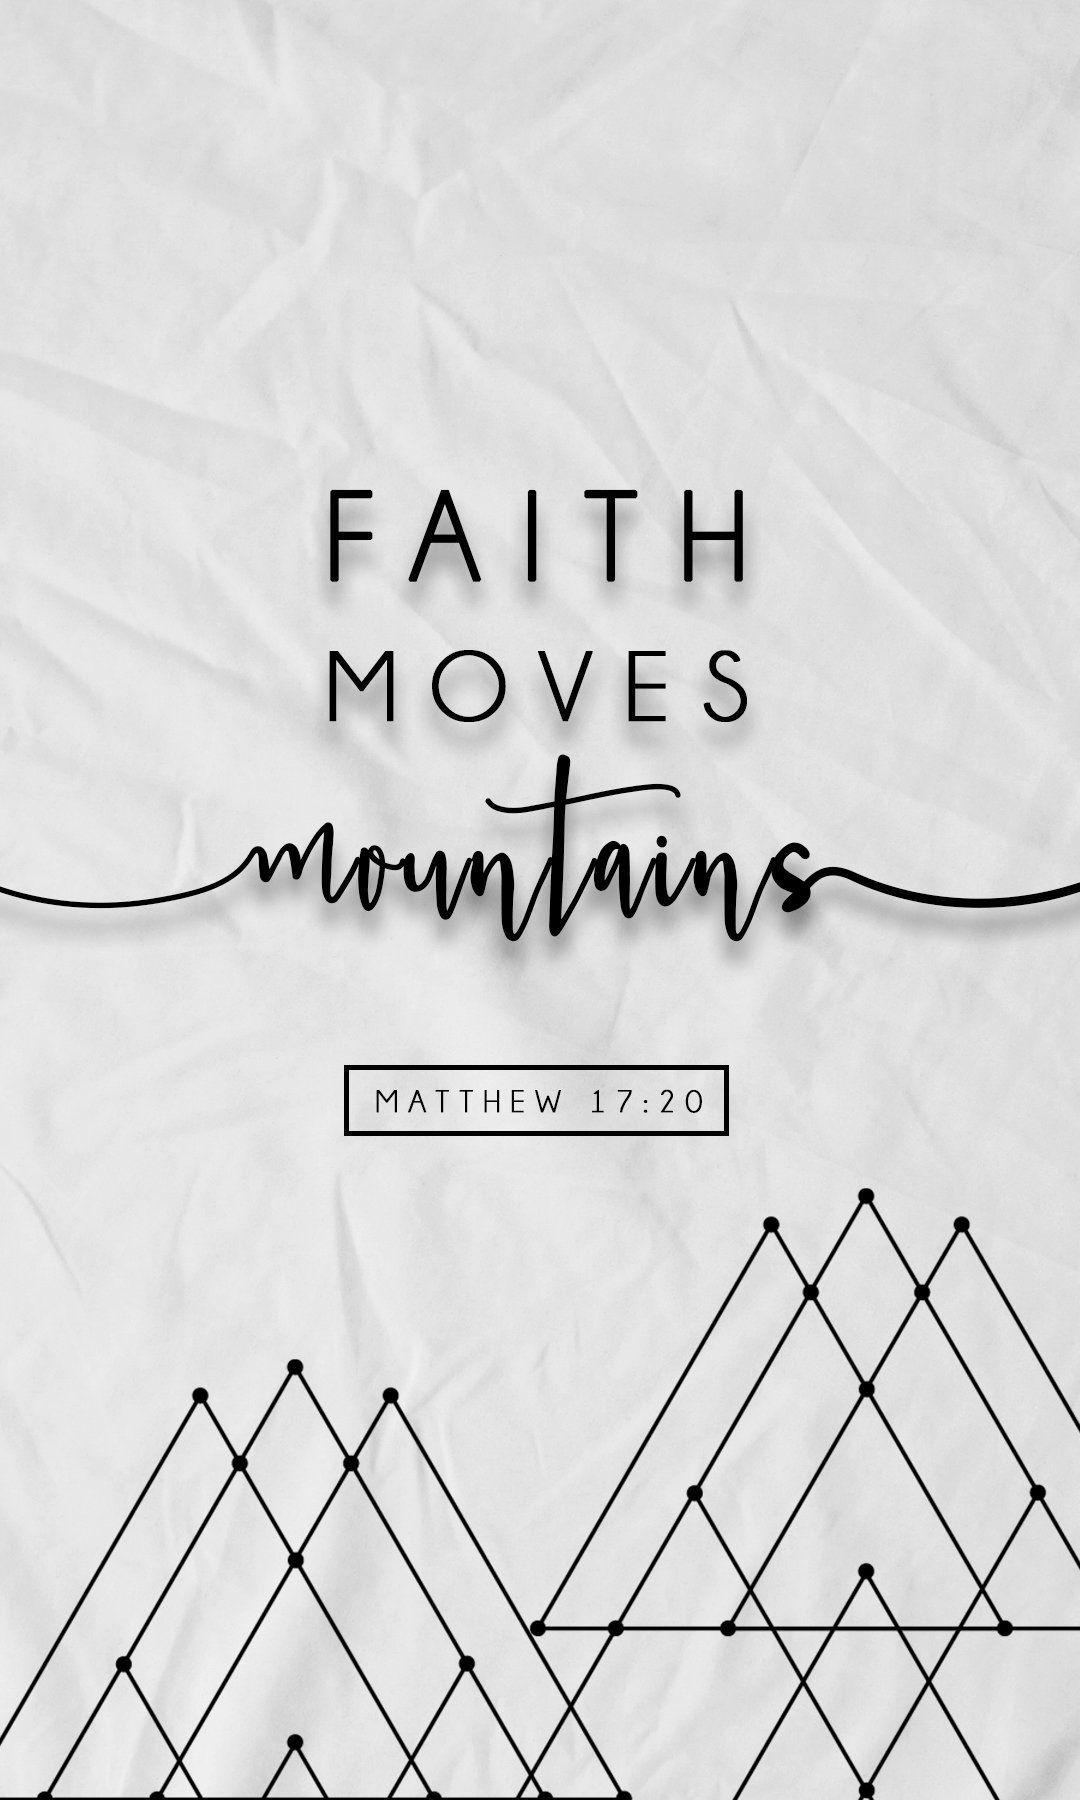 iPhone Wallpapers HD from pronetowanderla.com,  Faith Moves Mountains. FREE iPhone Wallpapers from Prone to Wander. Inspiring quotes, bible verses, and art for your phone!